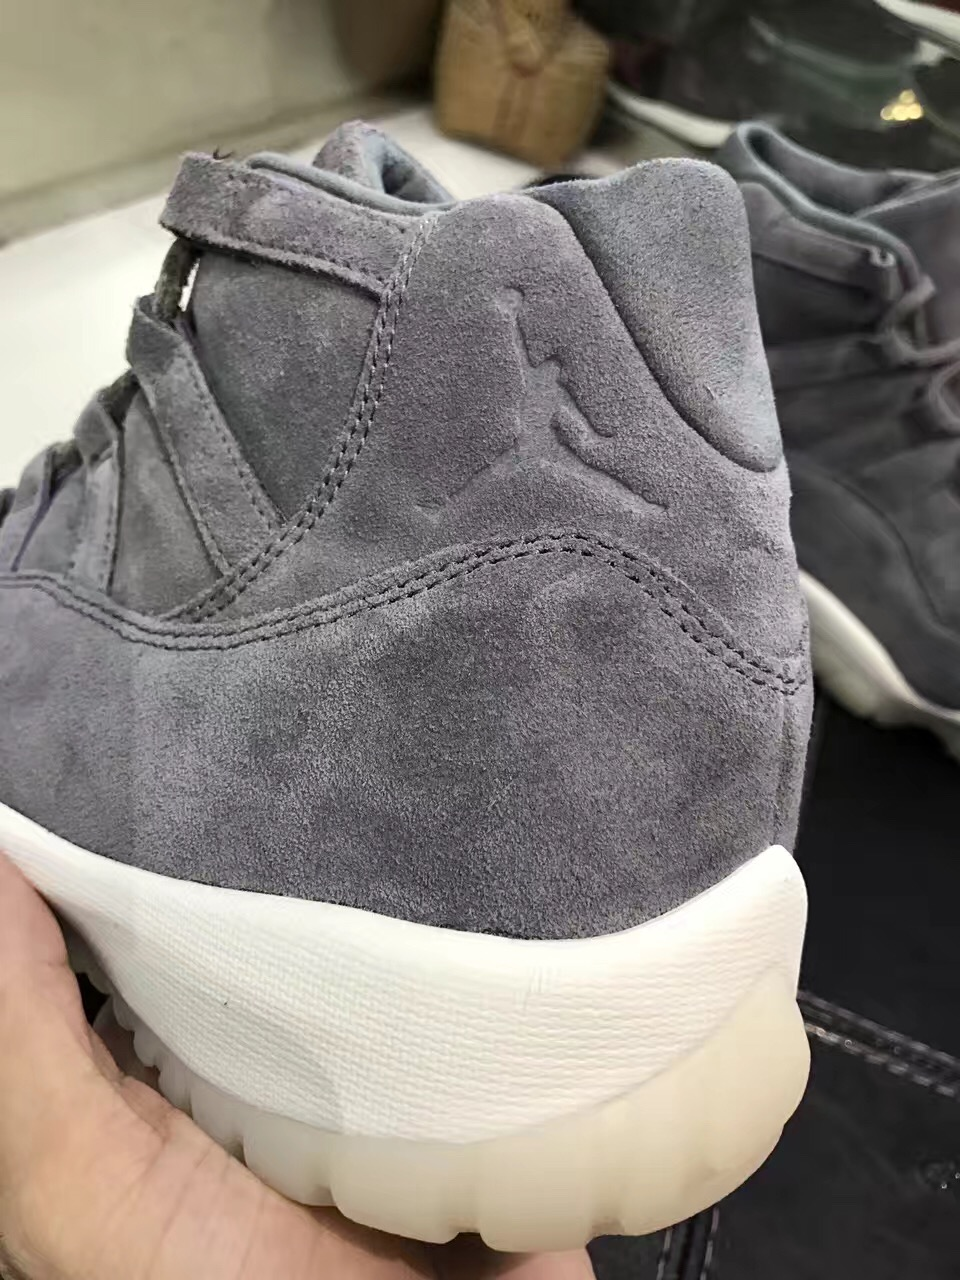 128b8185610f91 ... greece air jordan 11 premium grey suede that is expected to debut this holiday  2016.